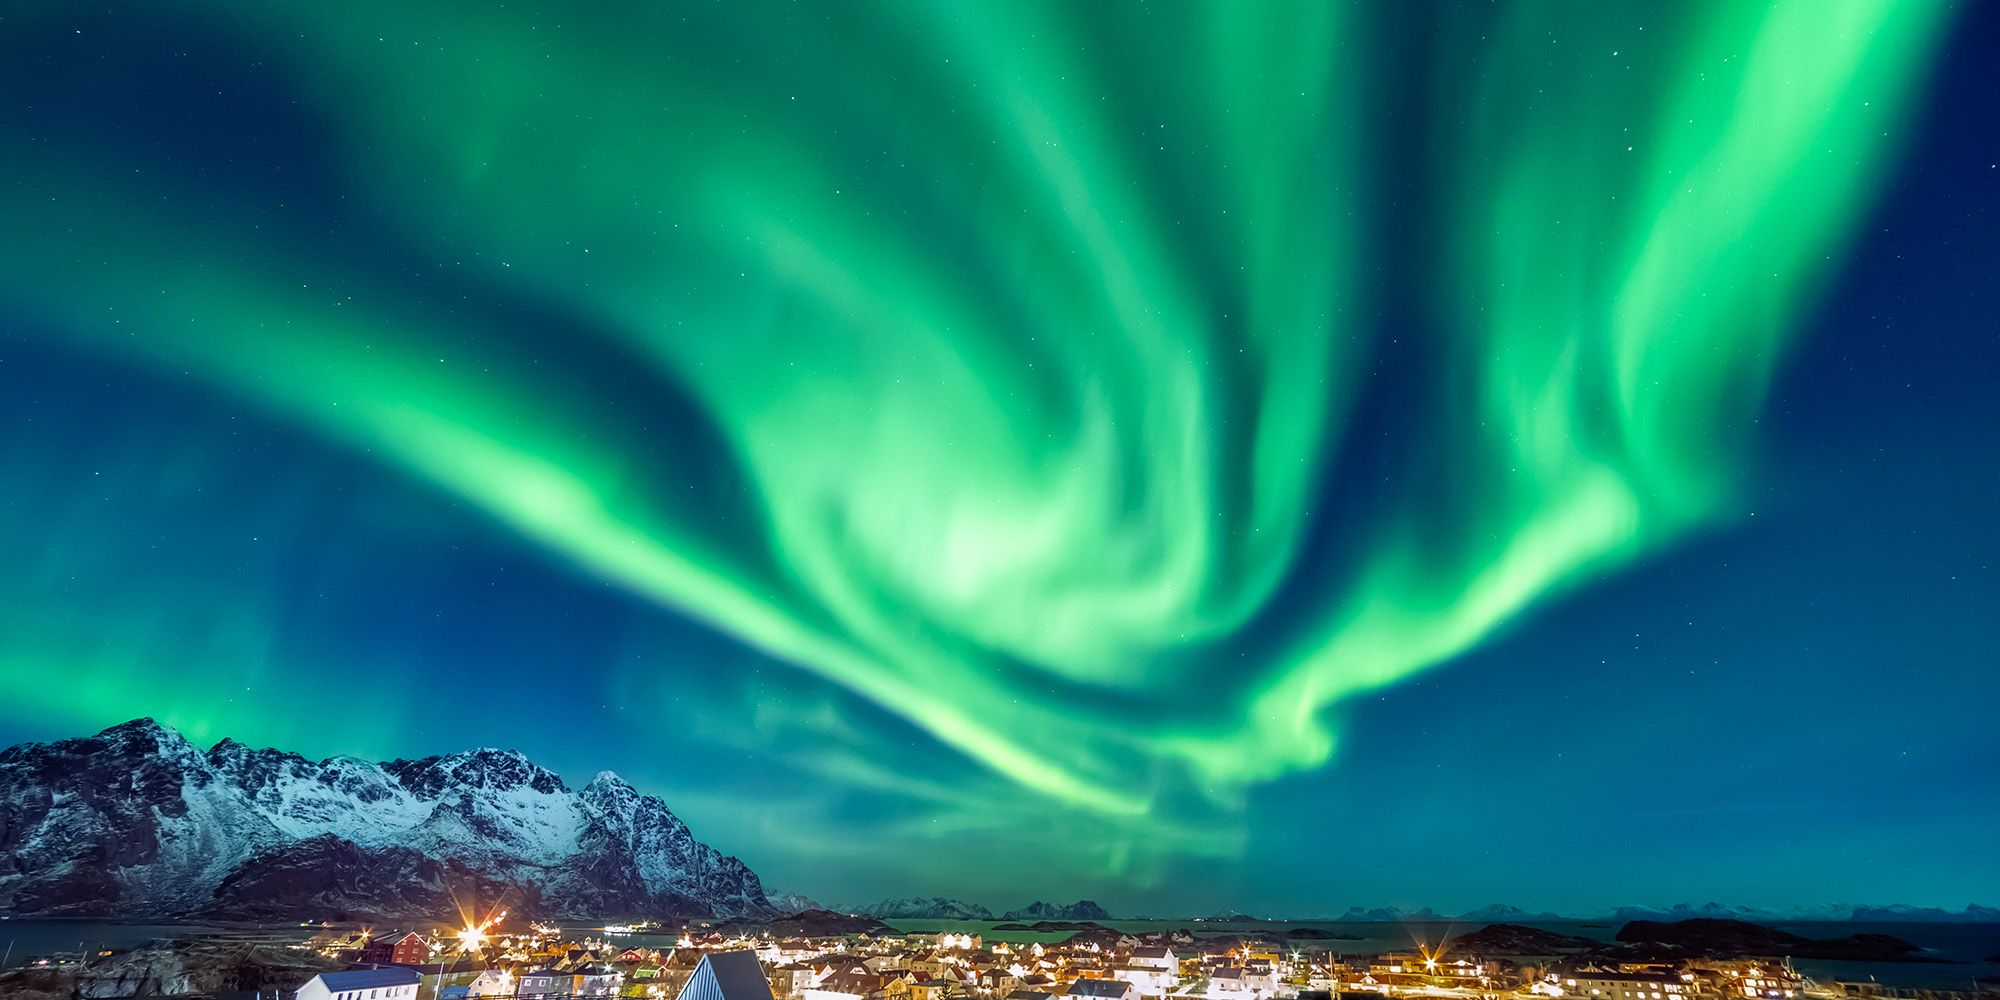 what are the northern lights?